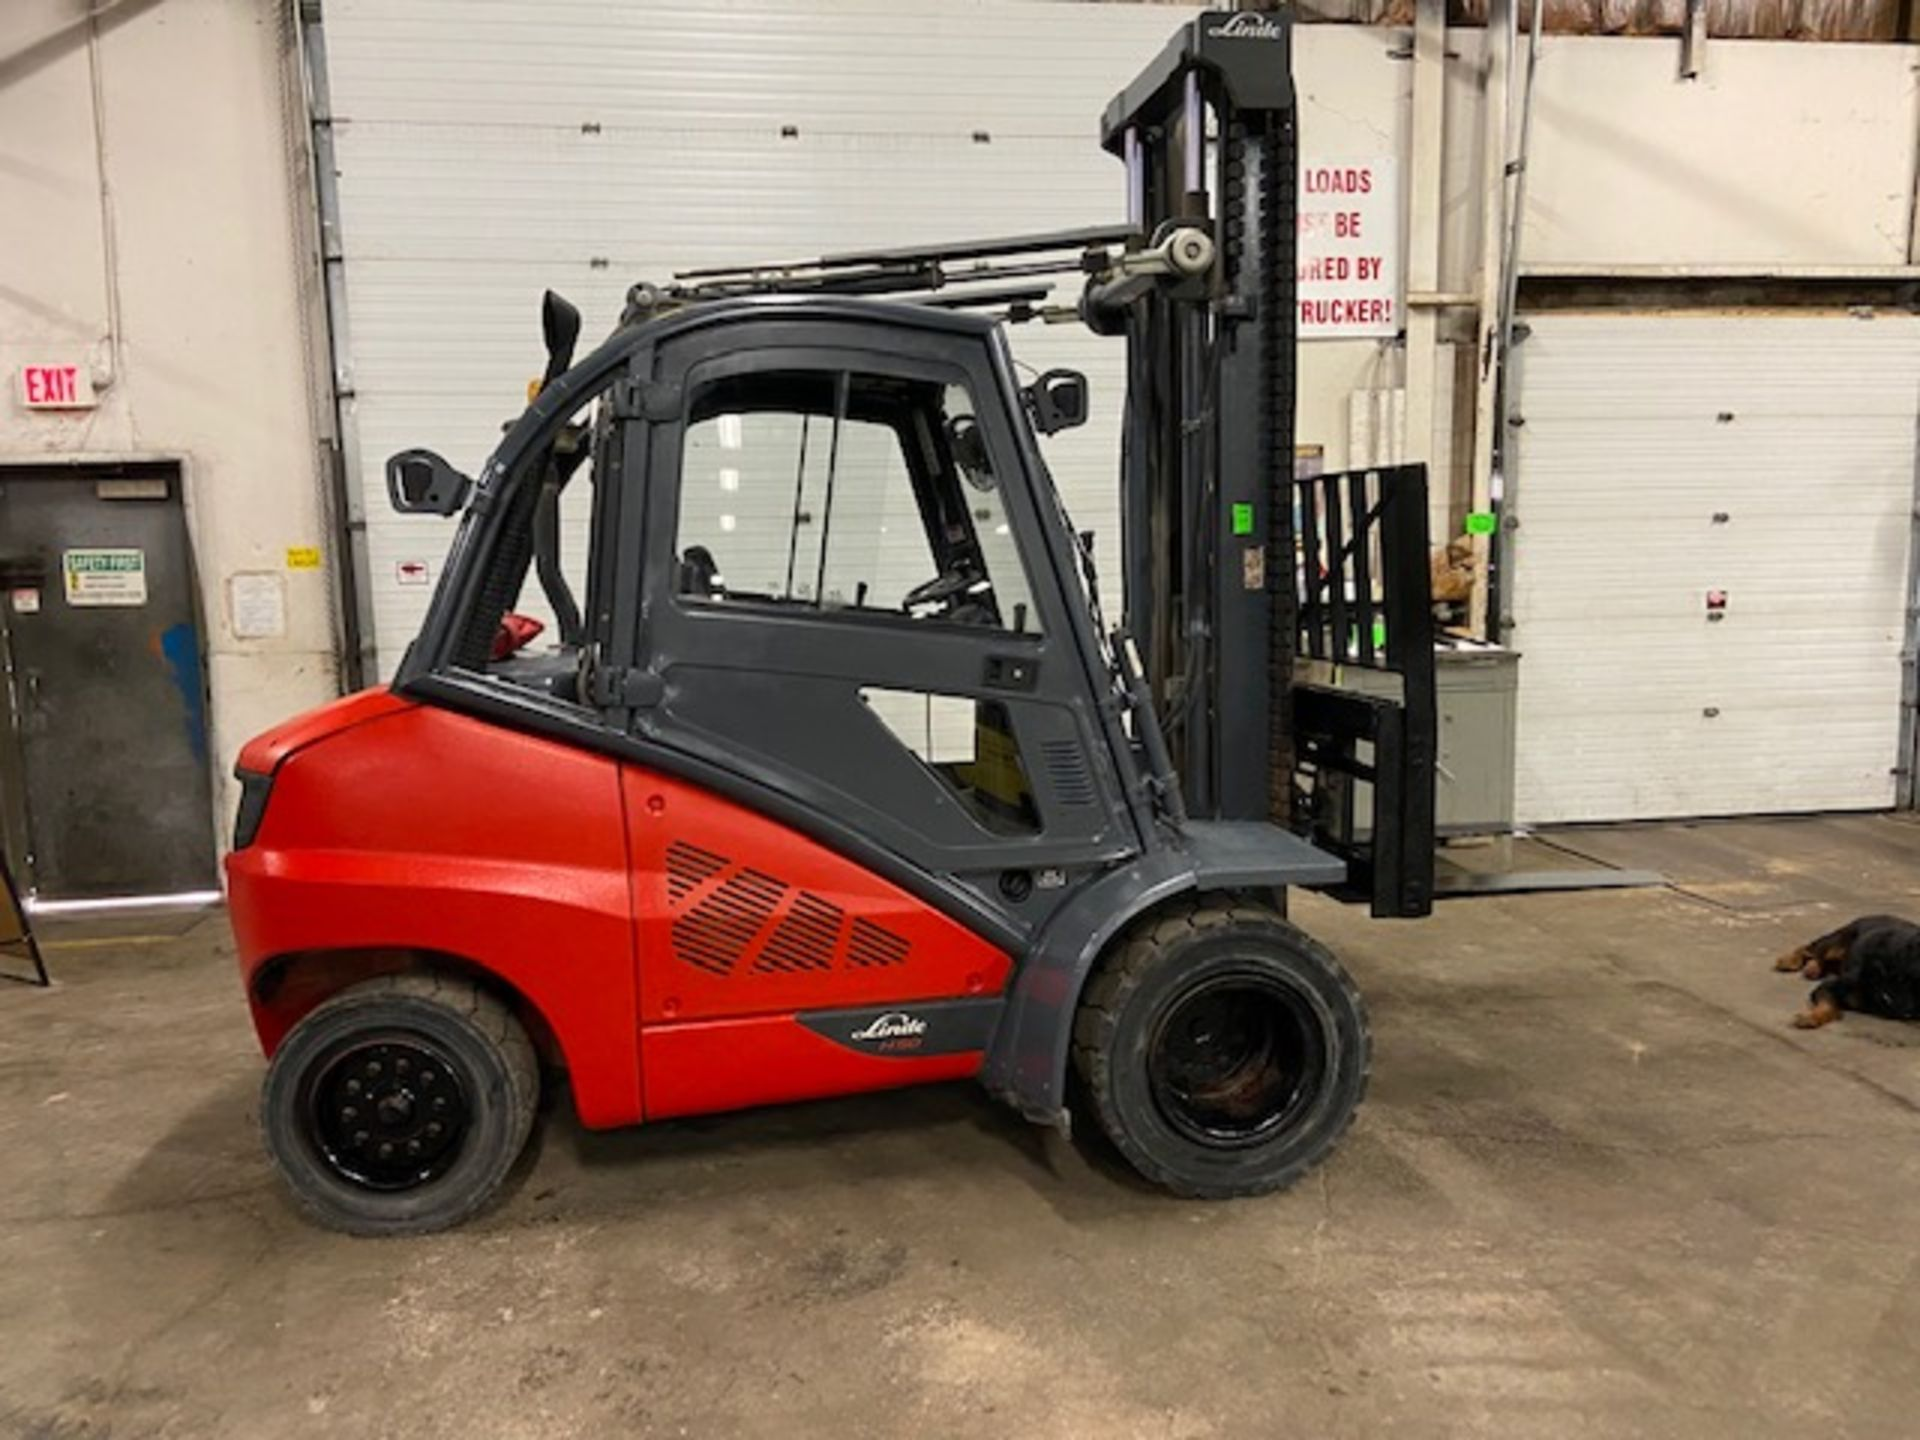 FREE CUSTOMS - 2012 Linde 10,000lbs OUTDOOR Forklift with NICE CAB & sideshift & fork positioner